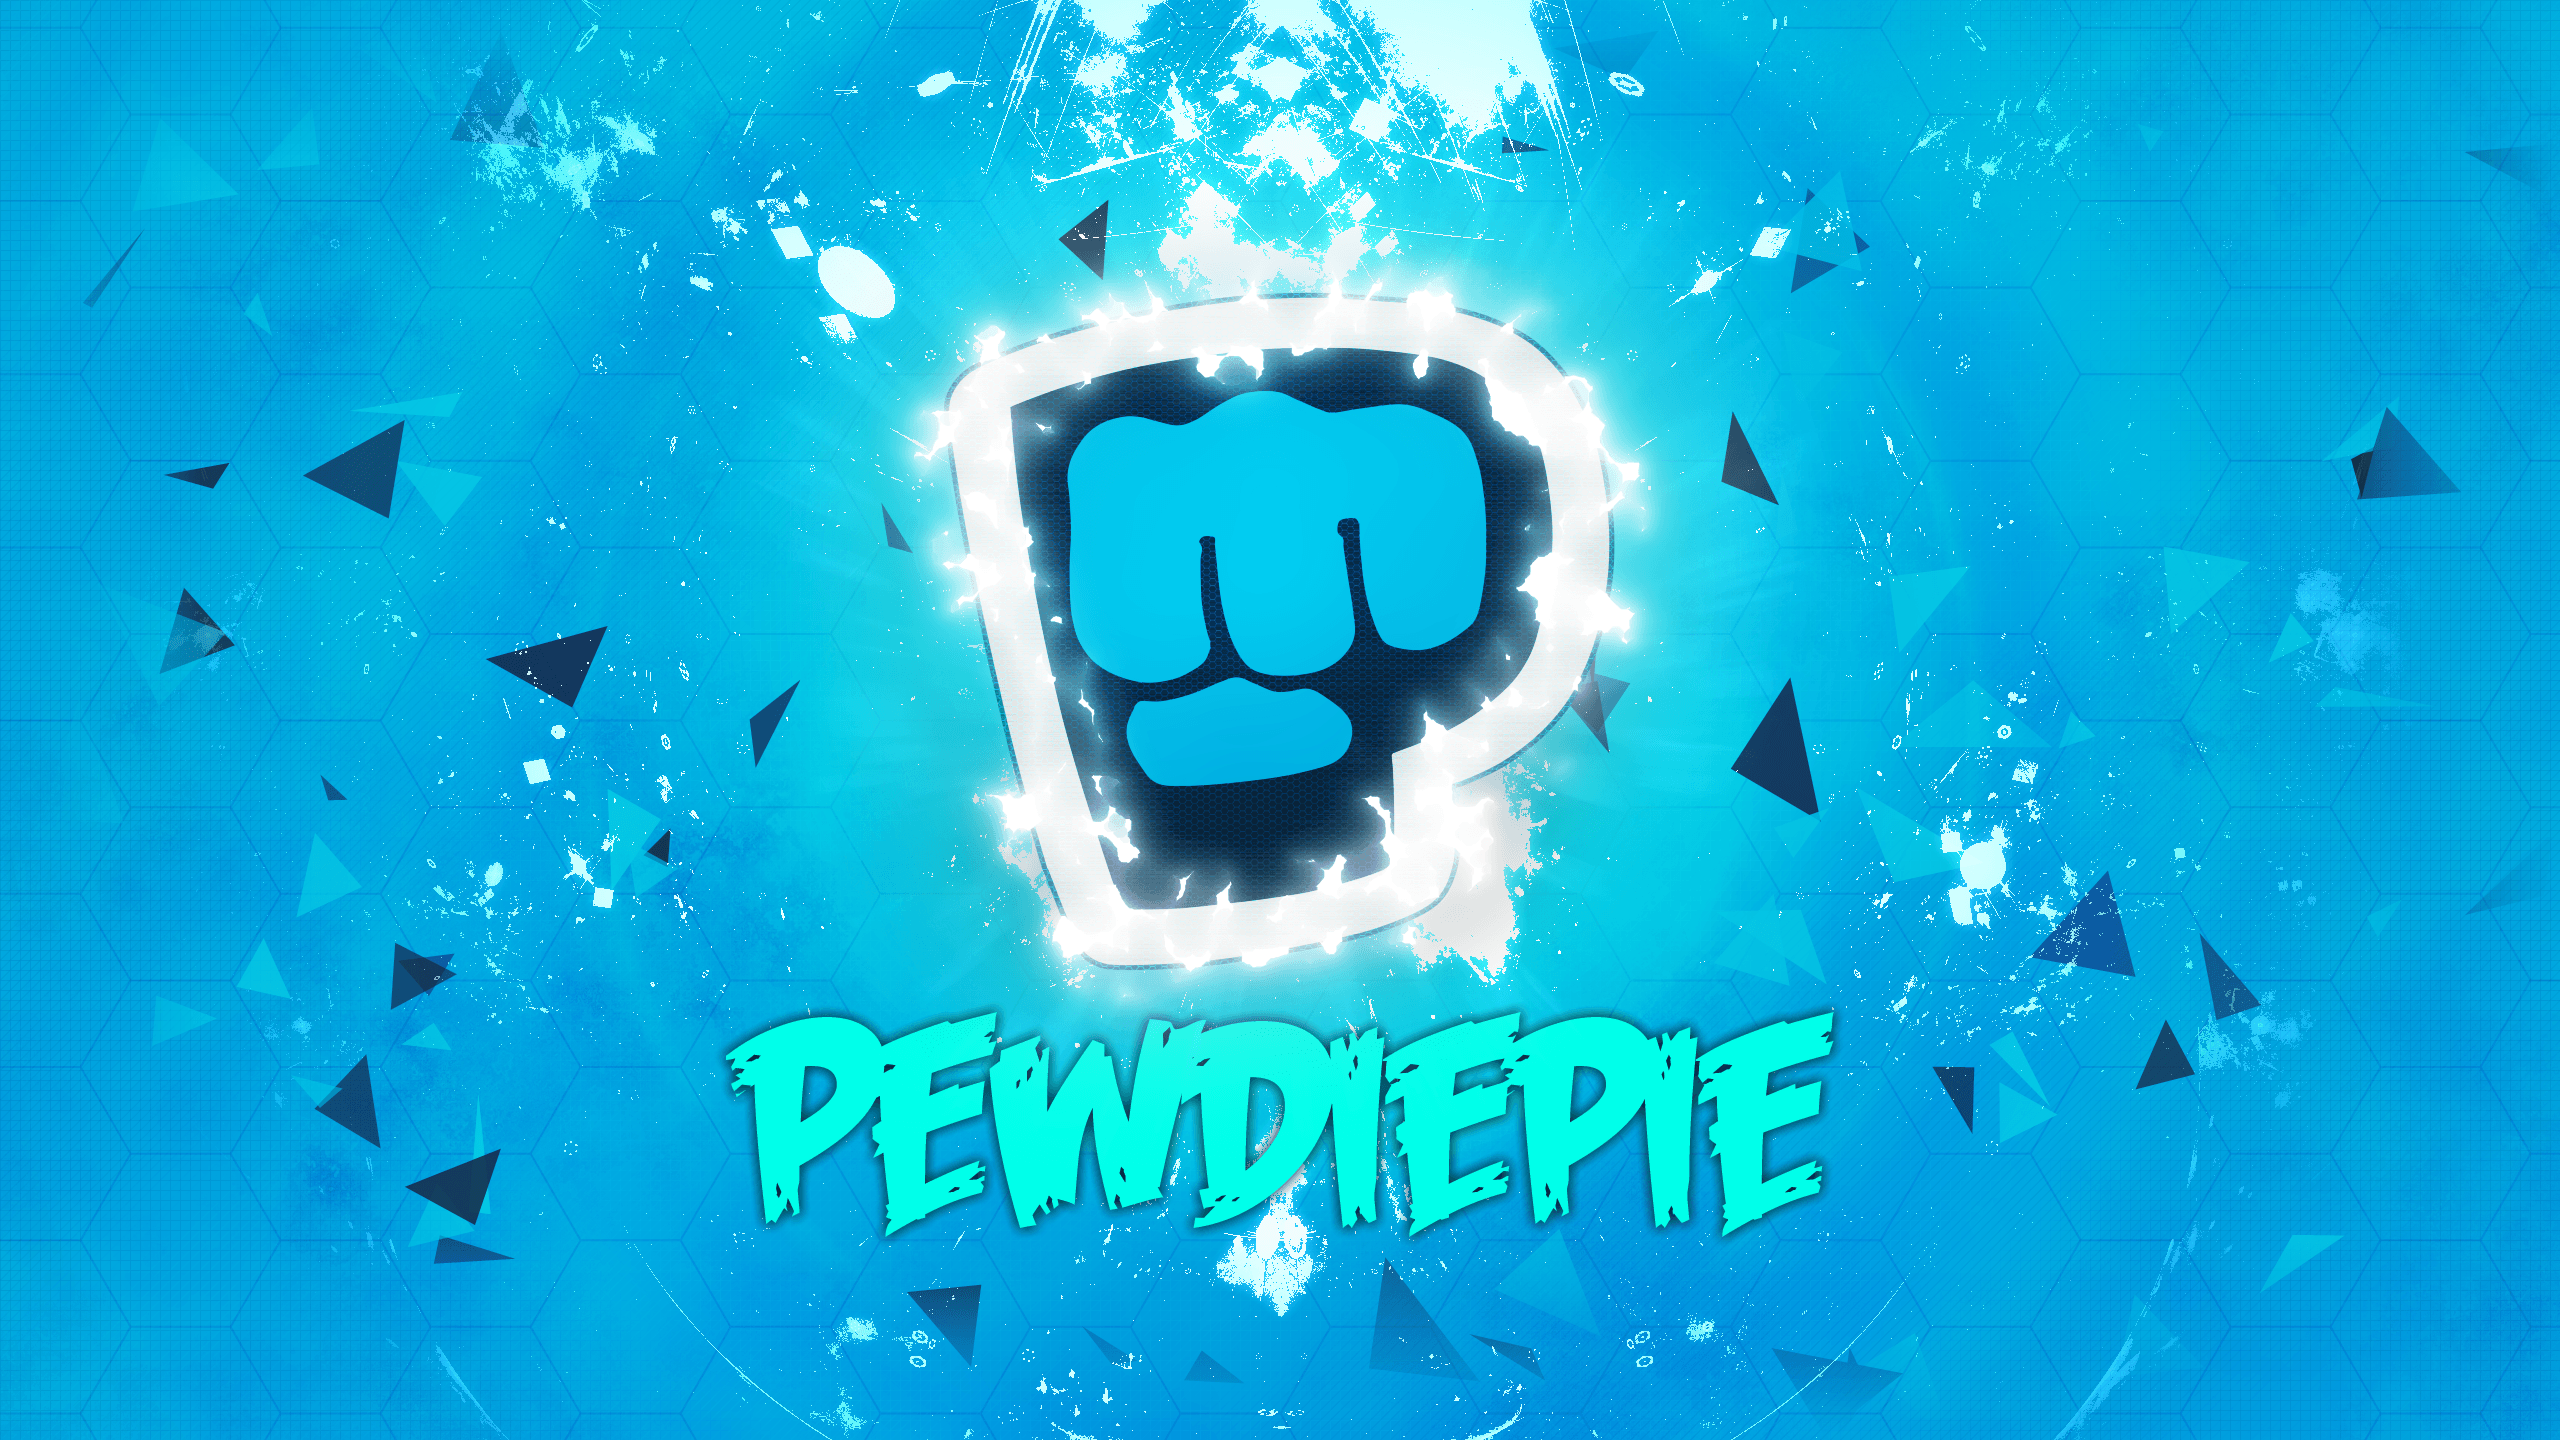 Pewdiepie Wallpapers Wallpaper Cave